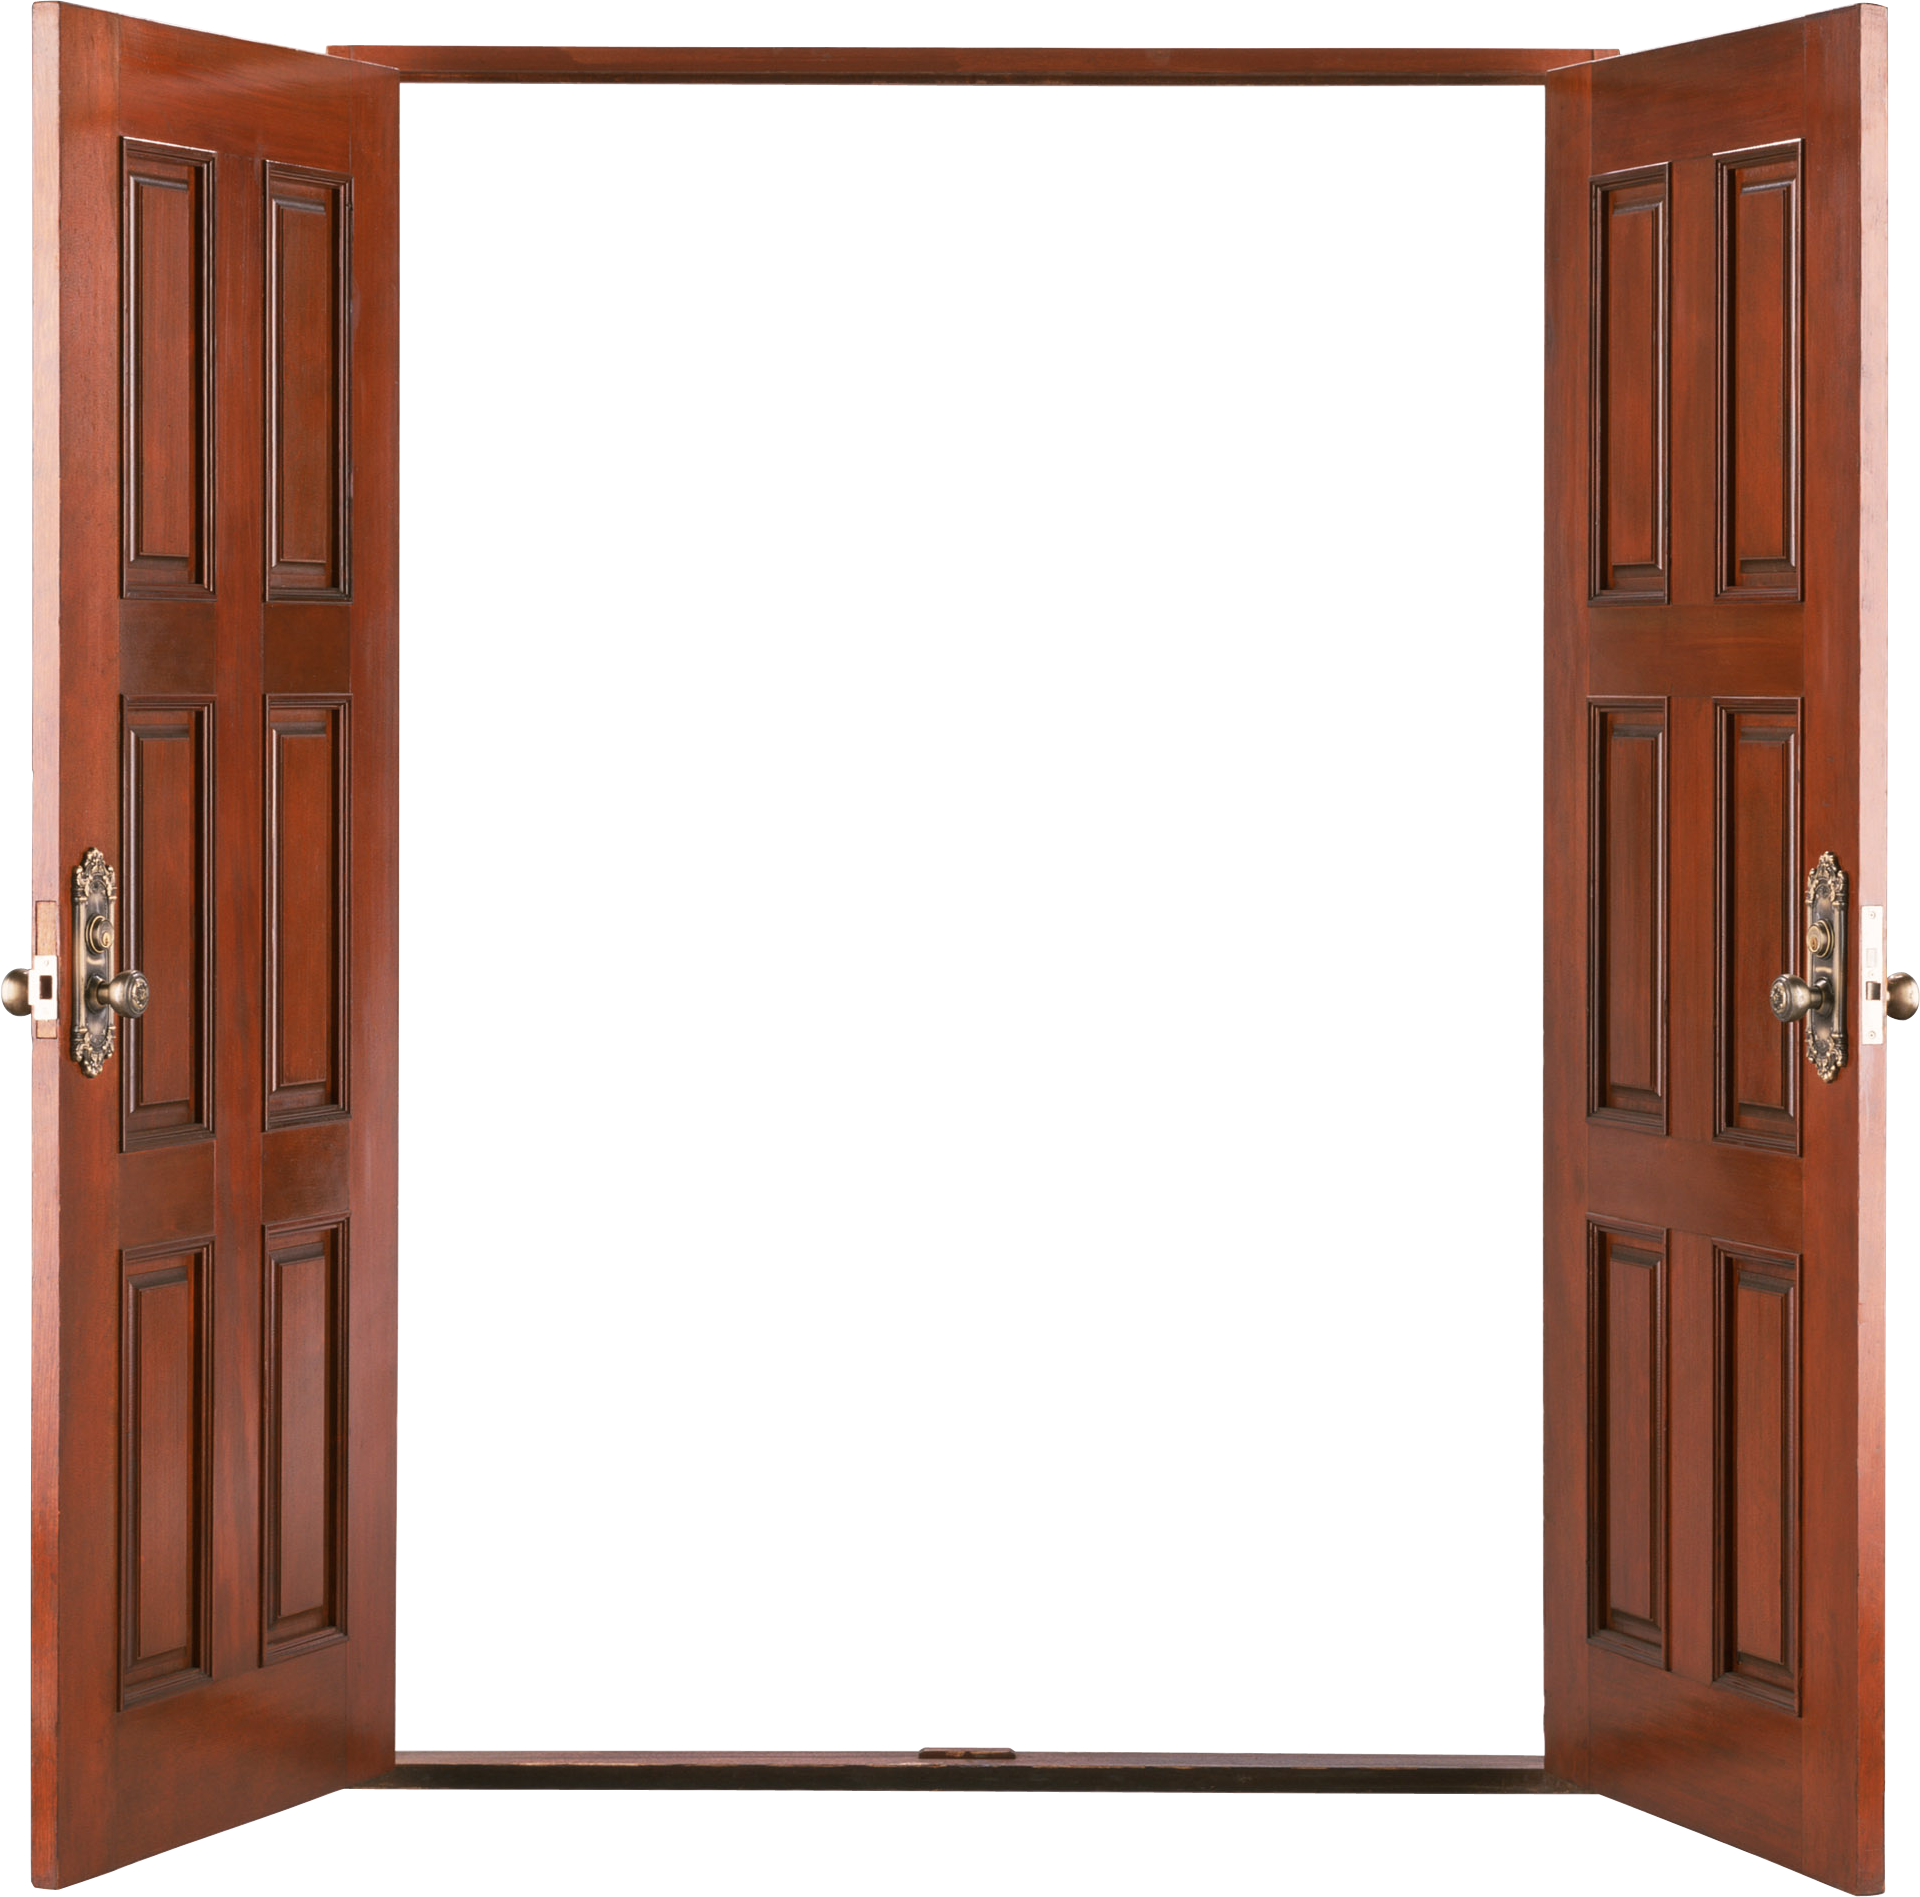 Open png immagini scrap. Door clipart bedroom door